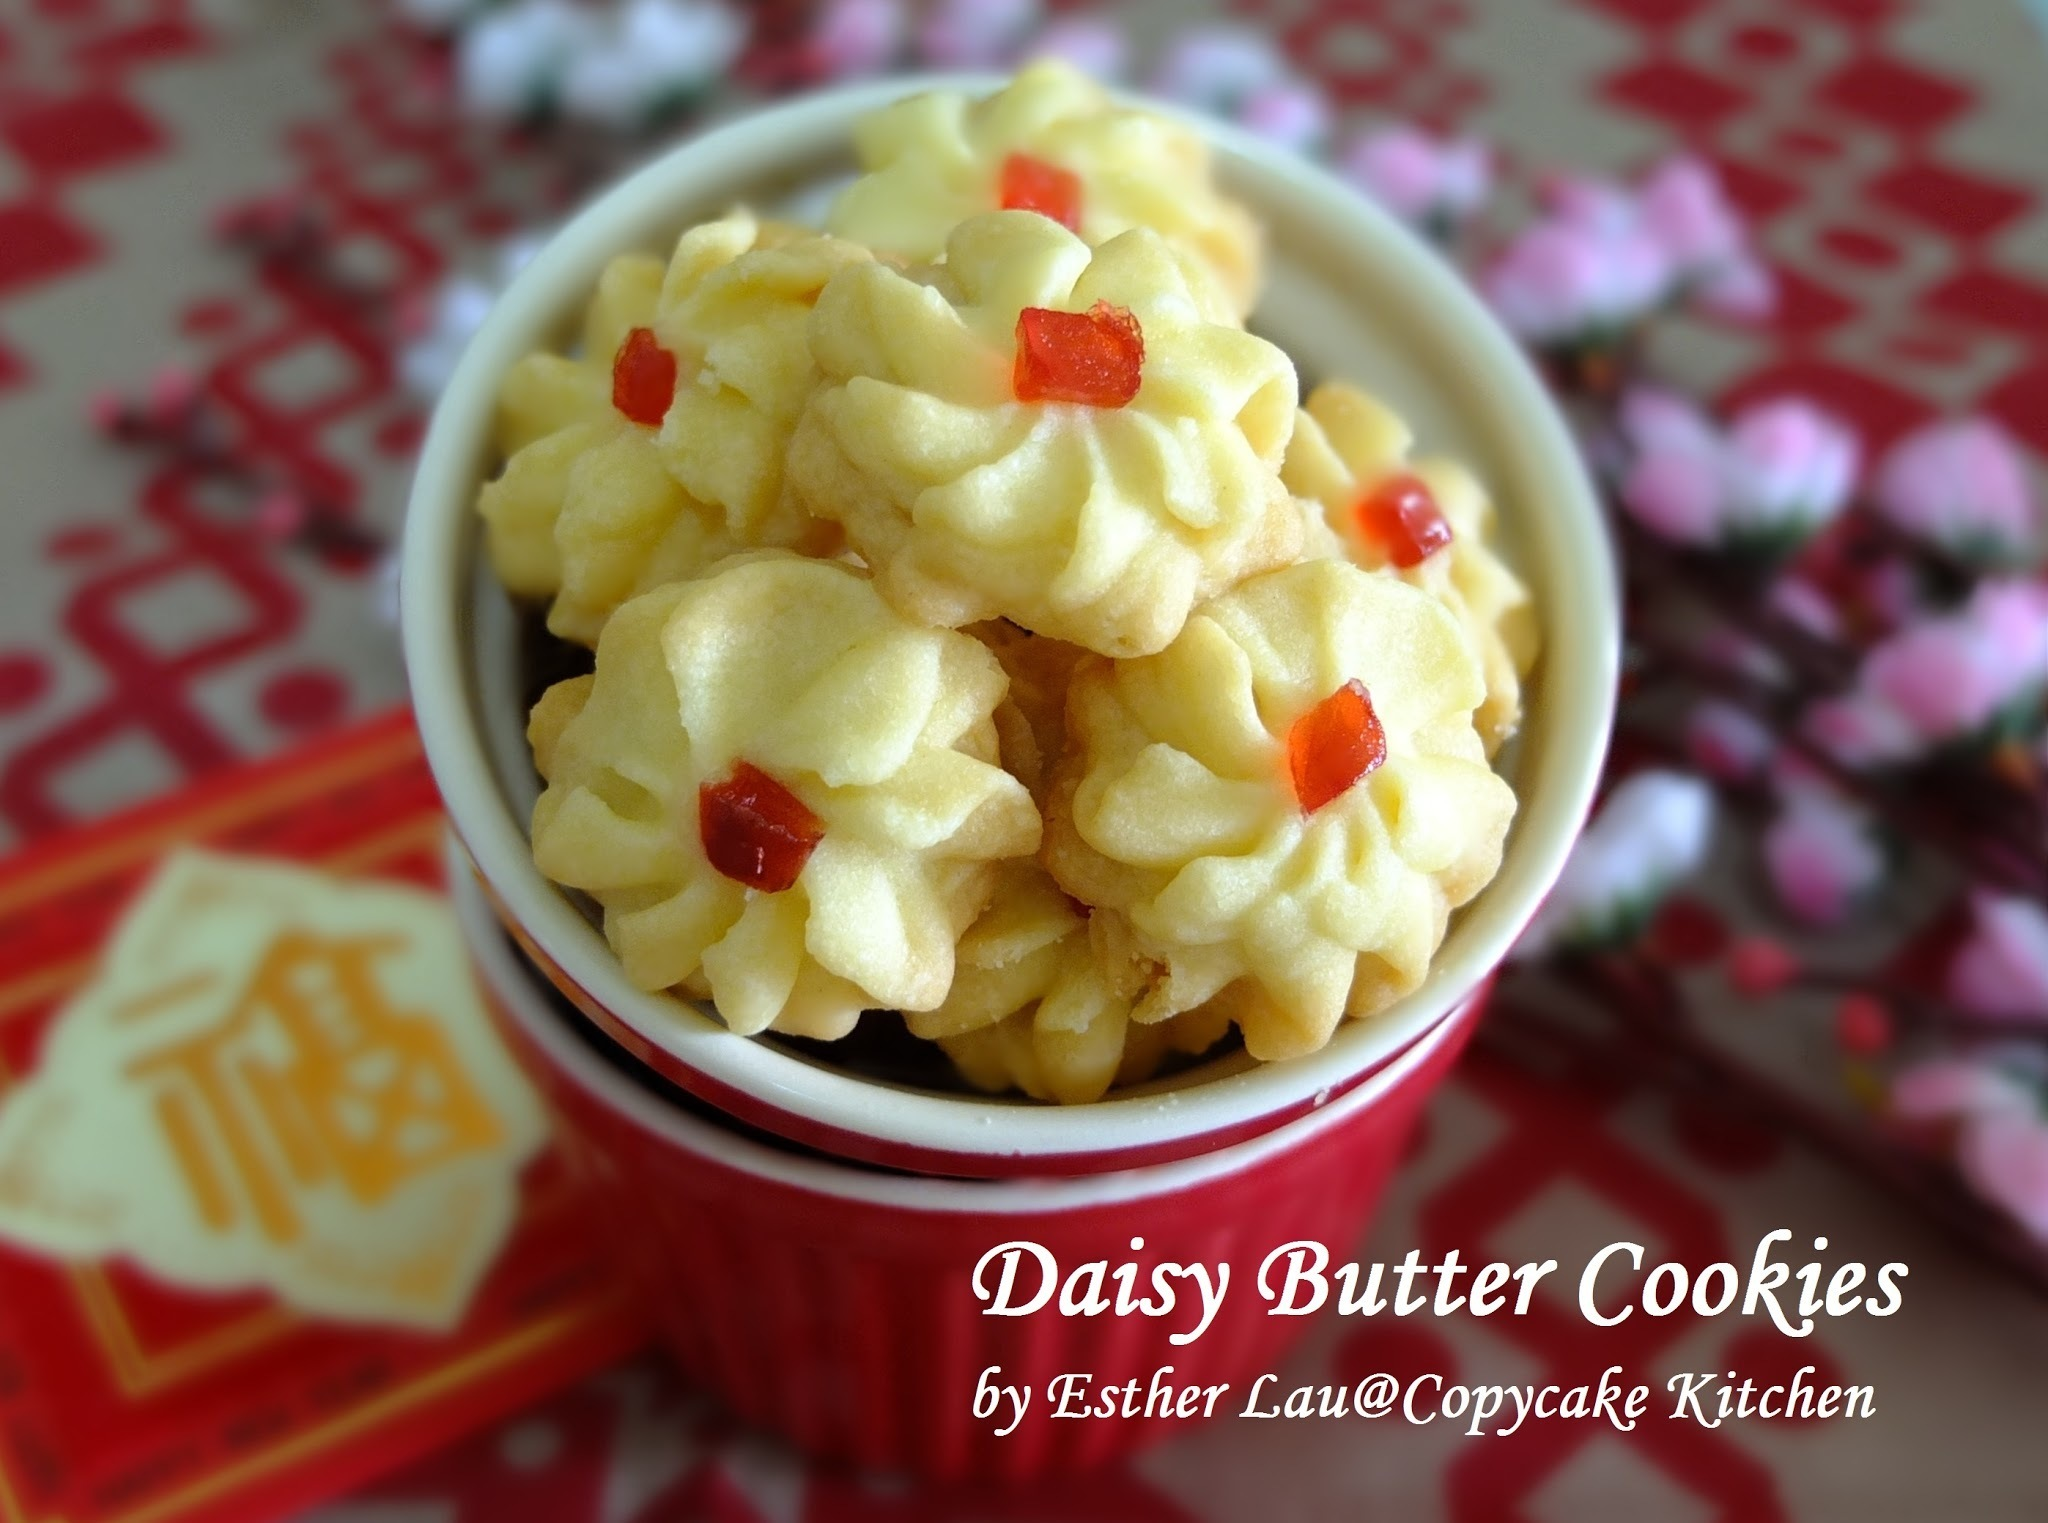 Daisy Butter Cookies (雏菊牛油饼)